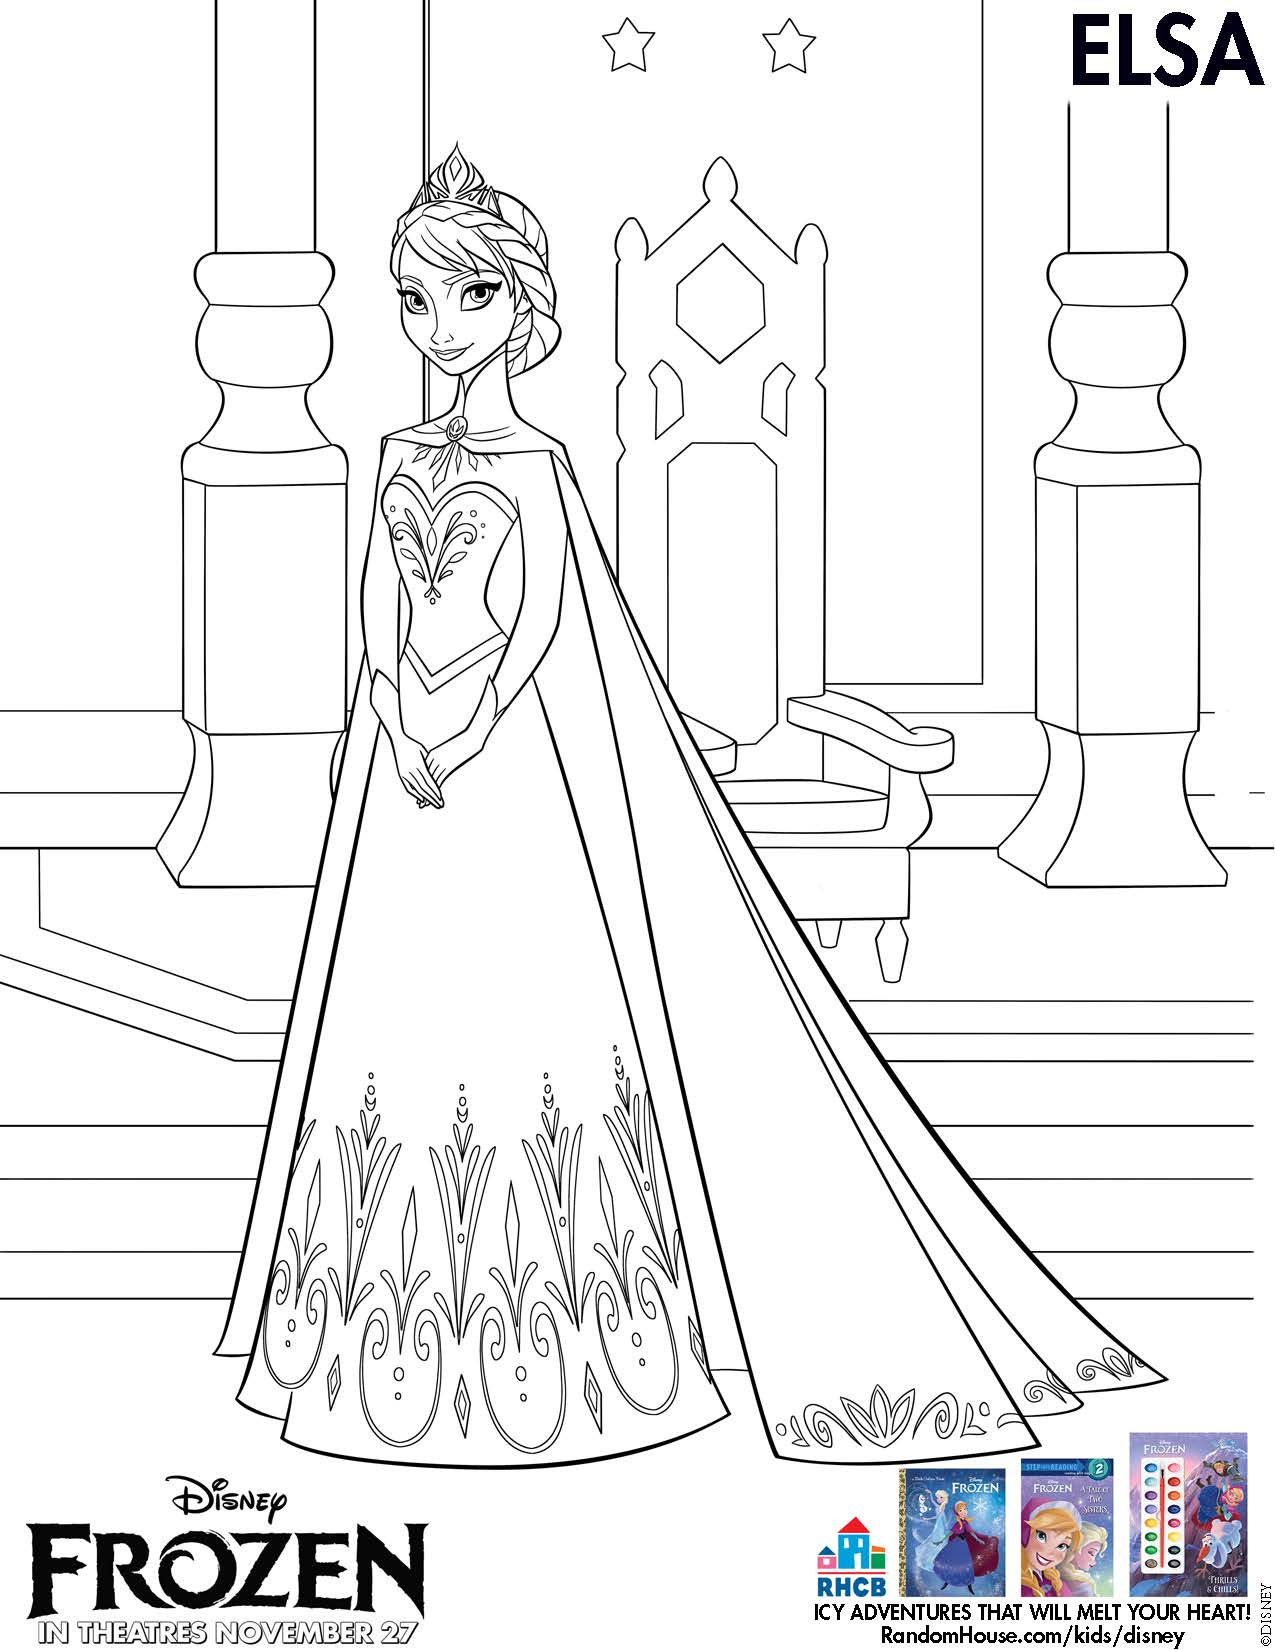 9 Images of Disney's Frozen Free Printables